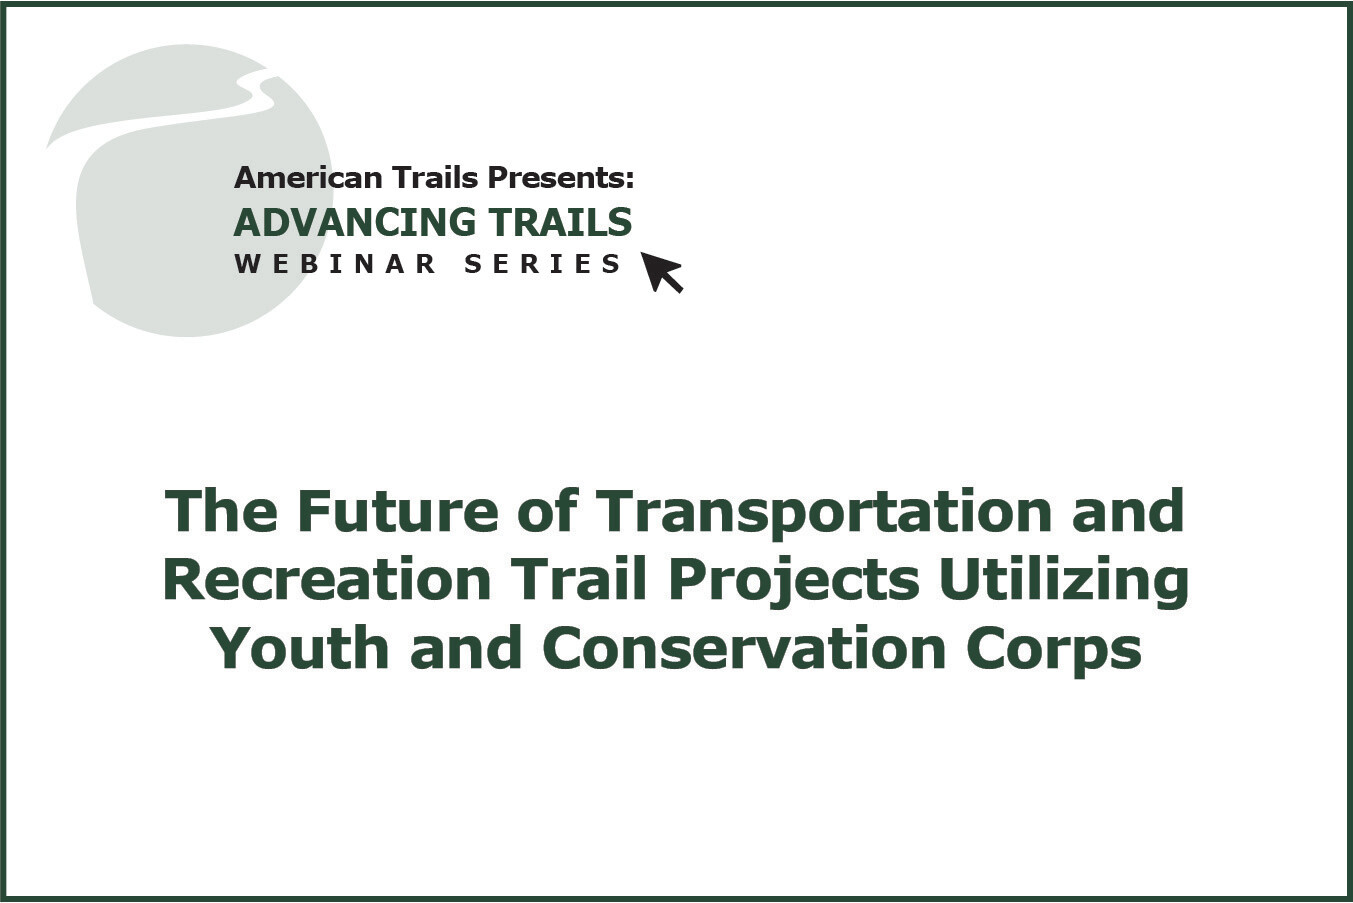 The Future of Transportation and Recreation Trail Projects Utilizing Youth and Conservation Corps (December 5, 2019)